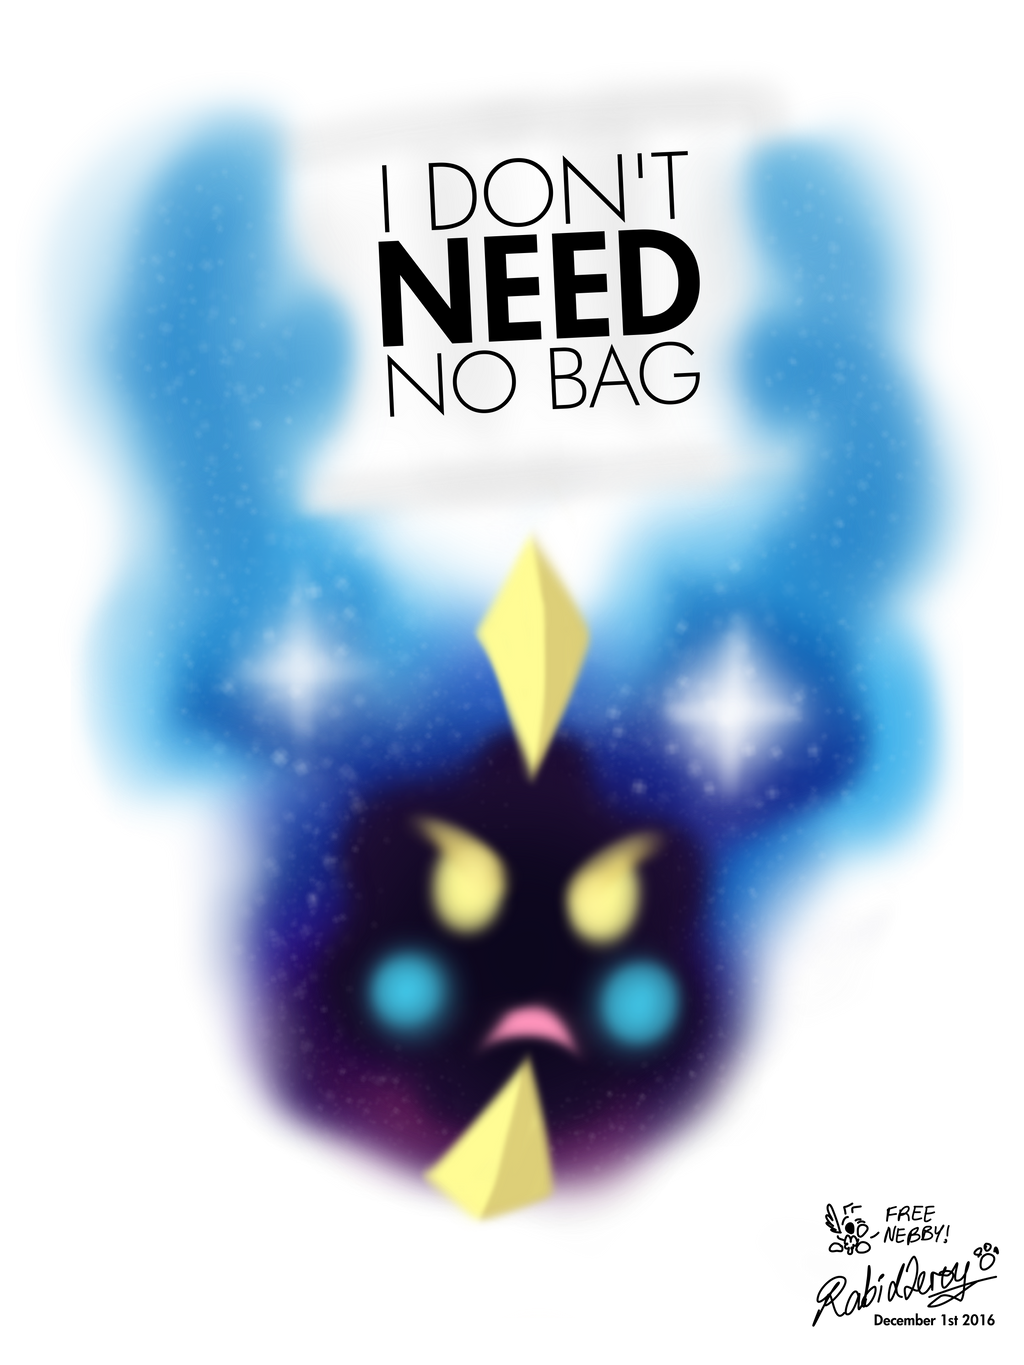 Nebby Needs No Bag by RabidLeroy